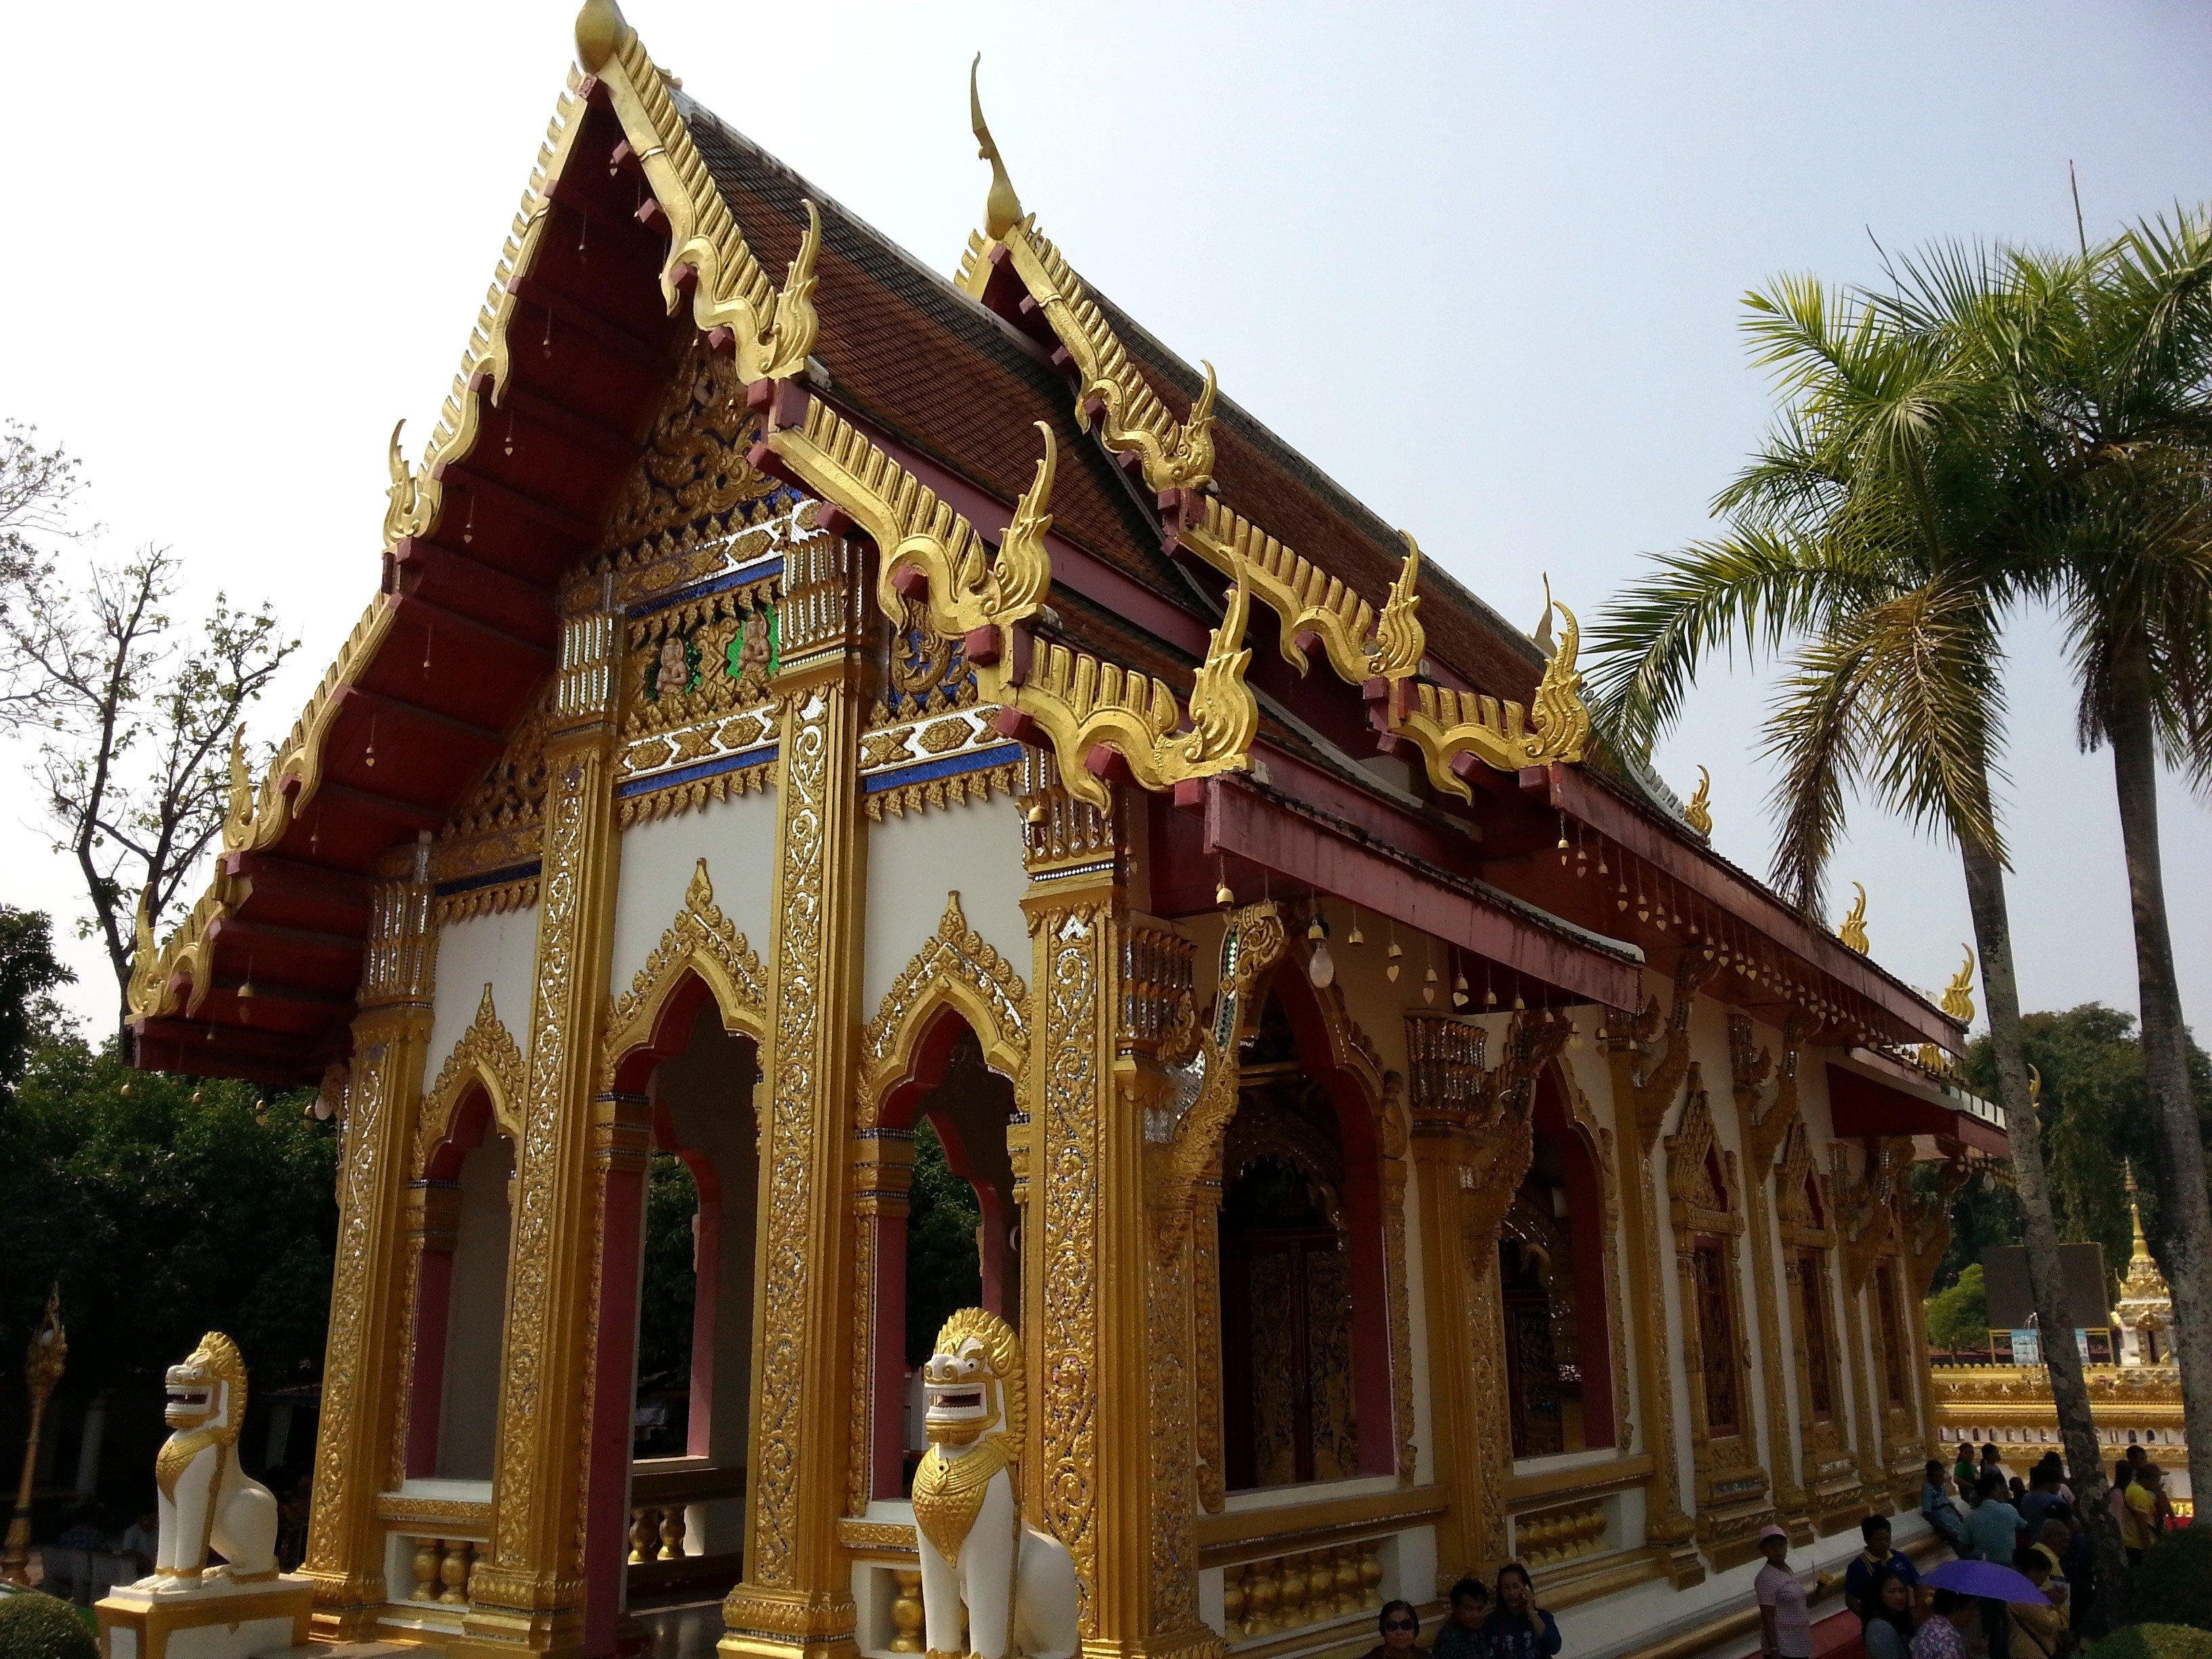 Ordination Hall at Wat Phra That Phanom